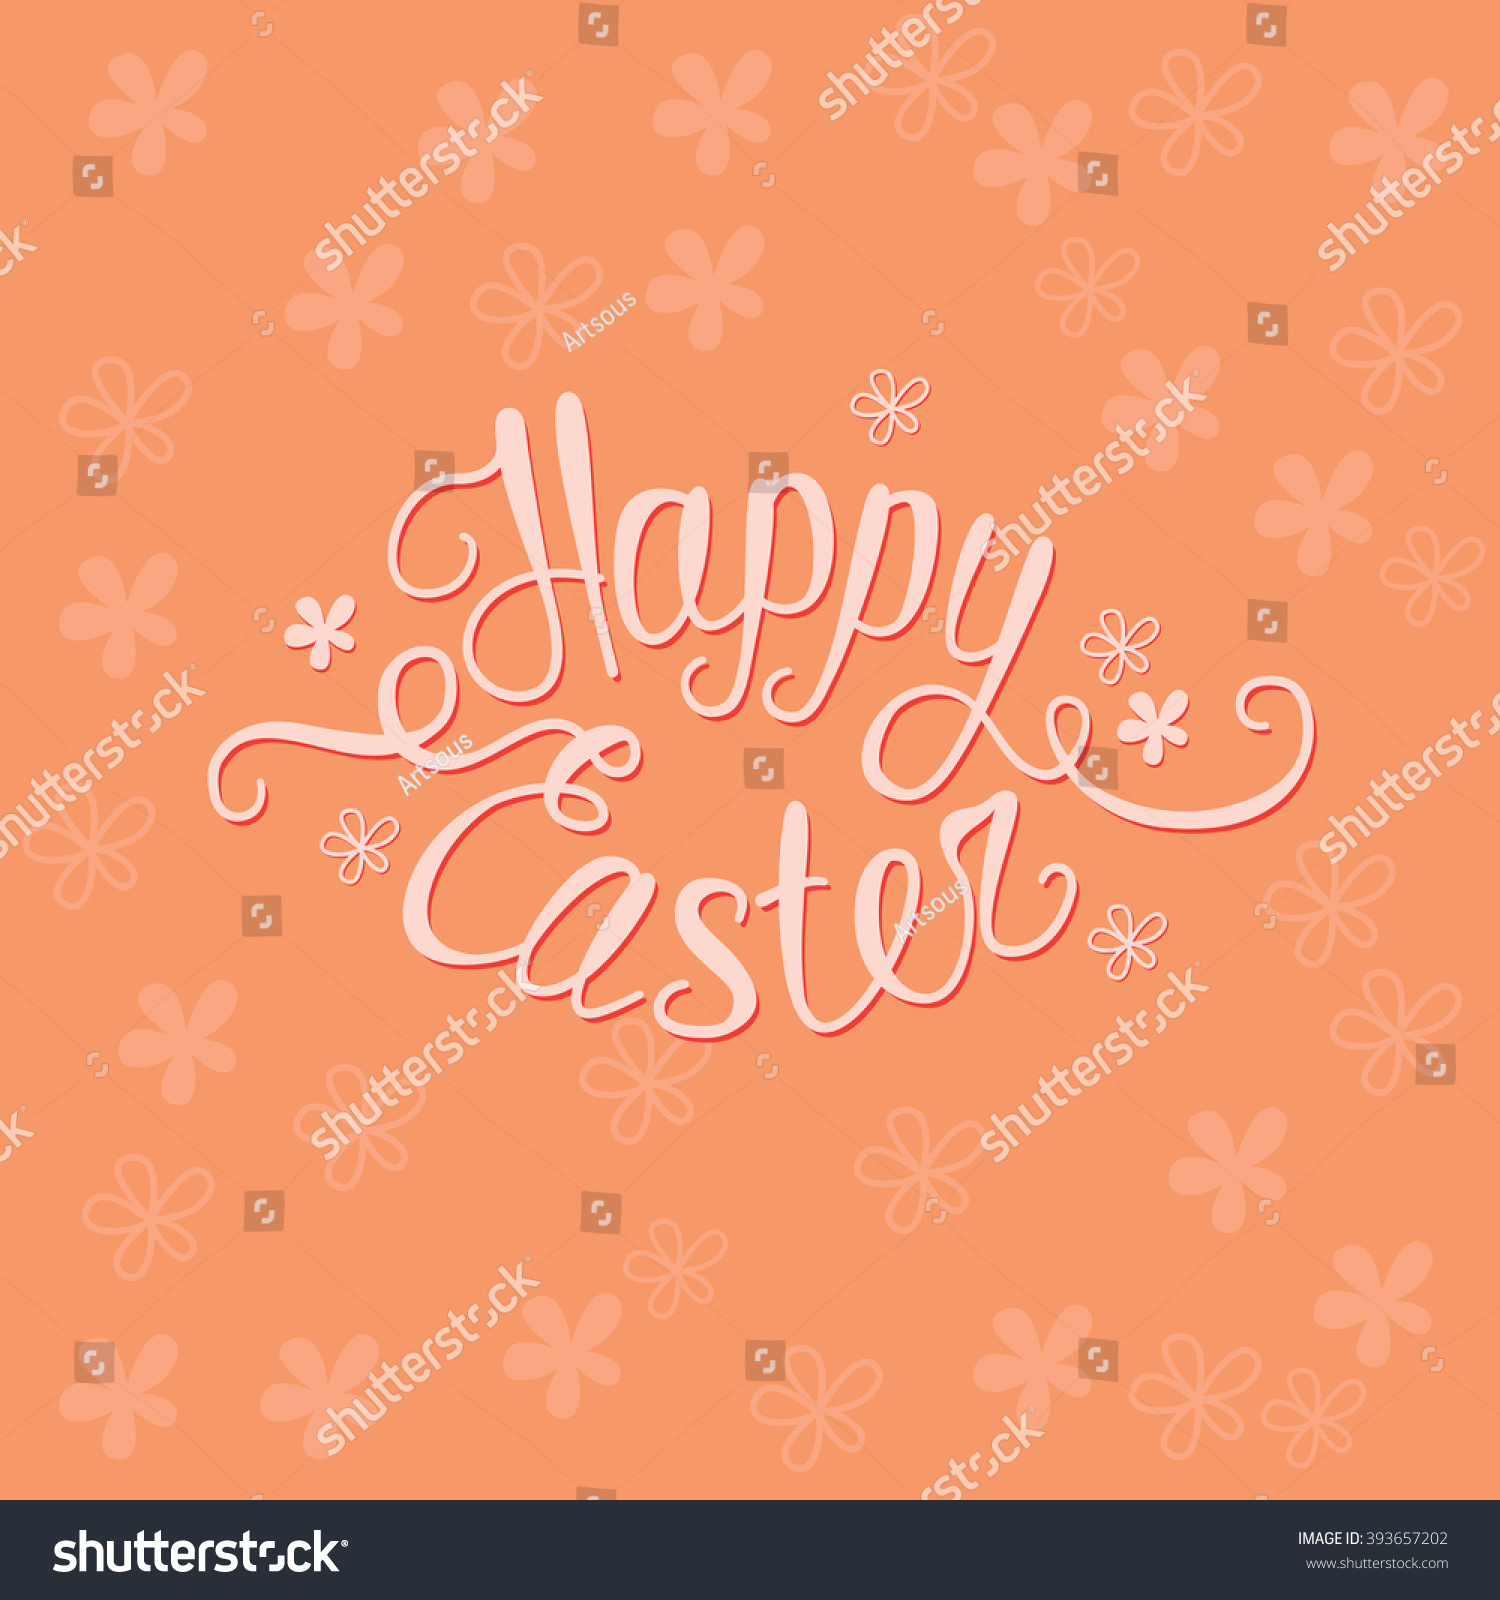 Happy easter orange greeting card unique stock vector 2018 happy easter orange greeting card with unique custom made words happy easter m4hsunfo